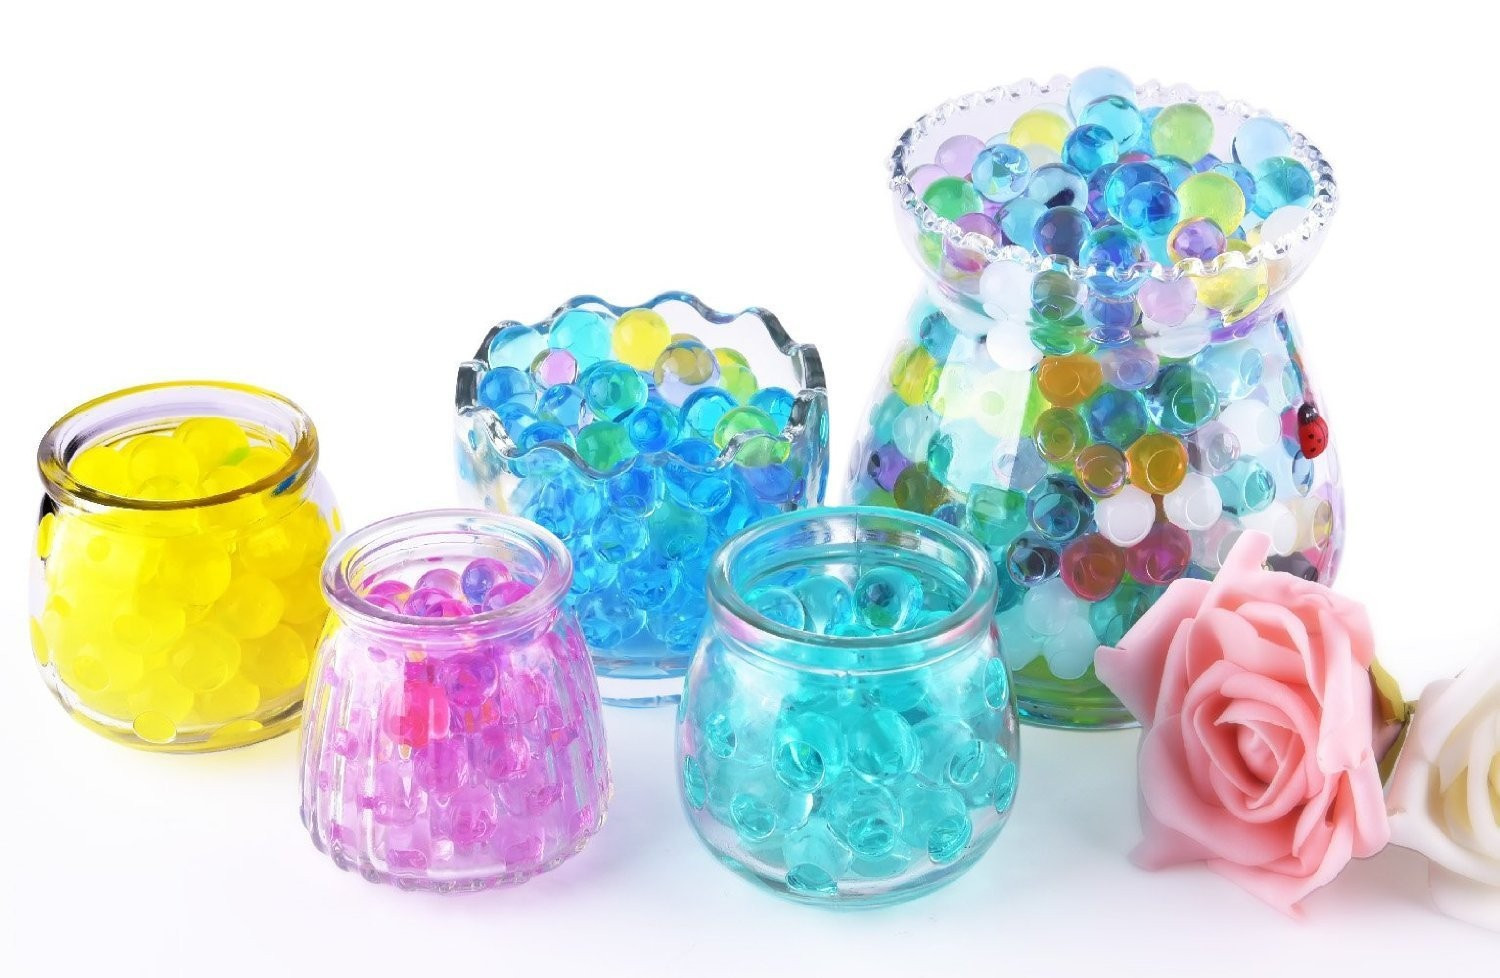 Cheap Vases Walmart Of Decorations for Weddings Best Of Cvh Vases Vase Decoration with In Information